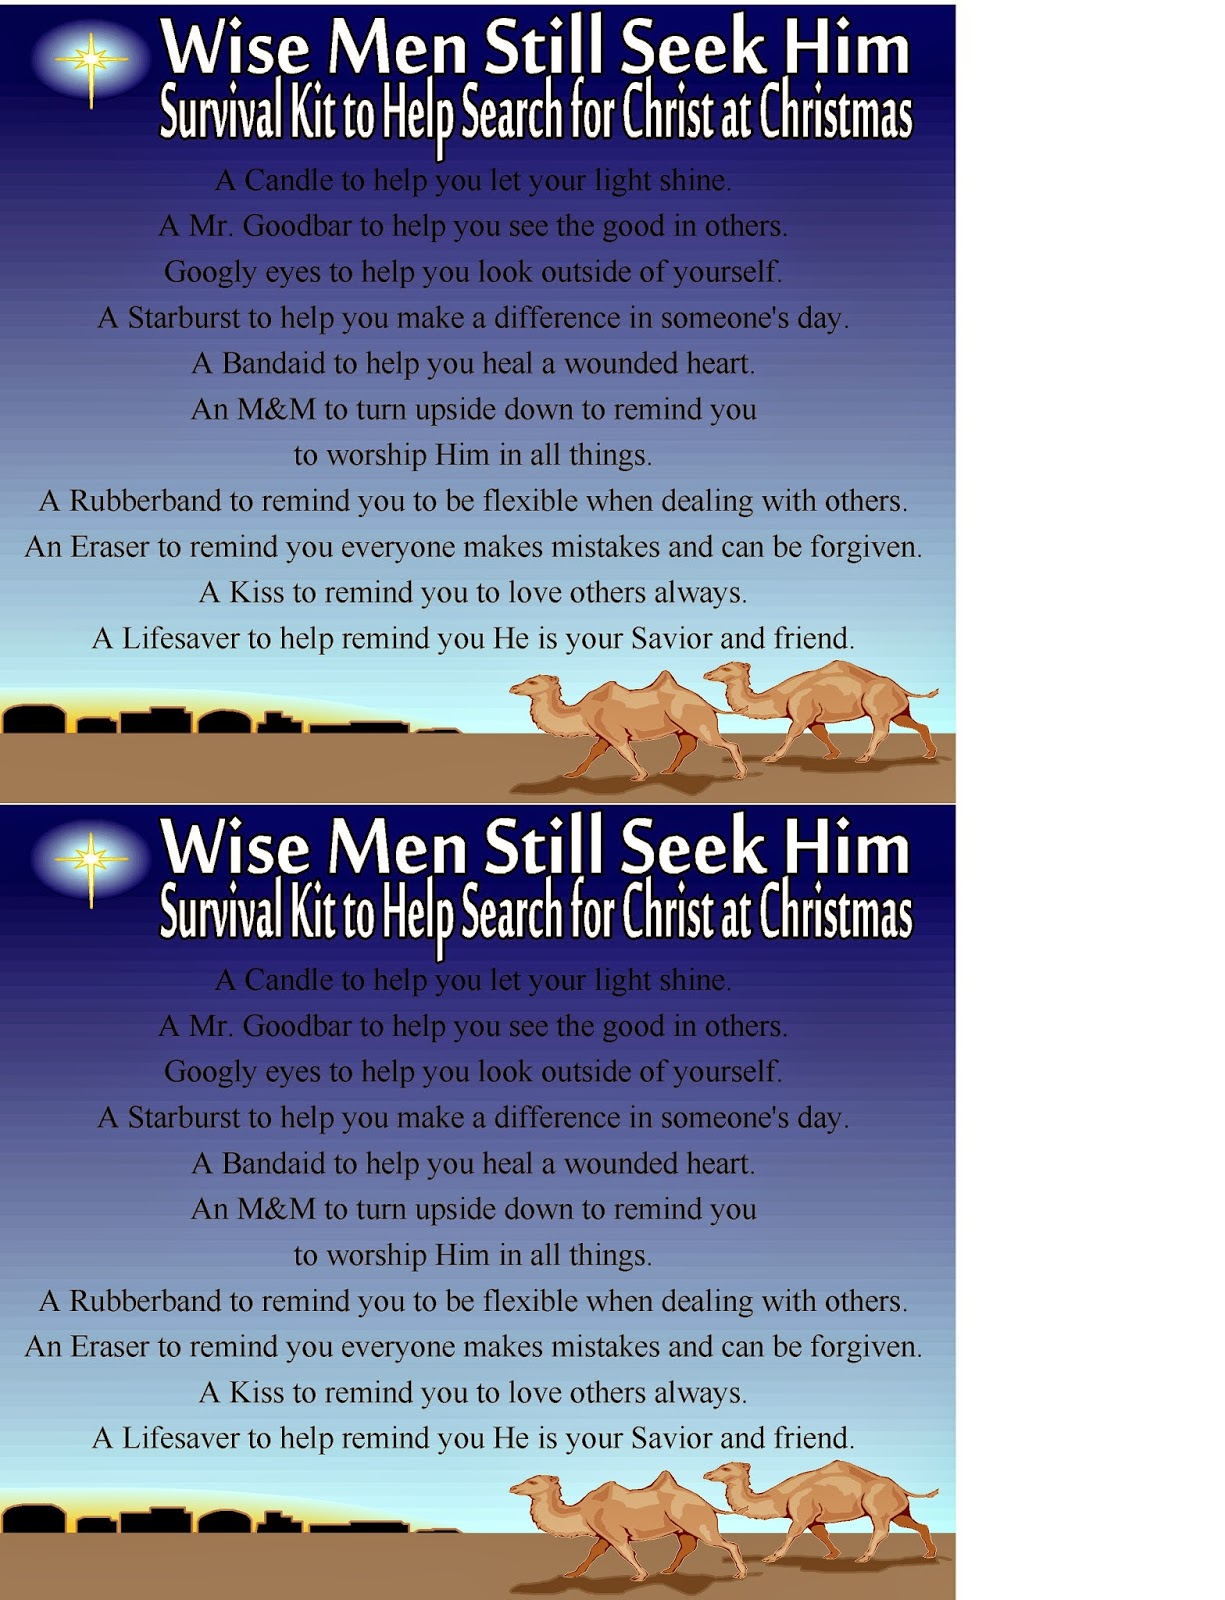 Search for Christ this Christmas with this printable Survival kit for the modern day Wise men.  Each item within the kit reminds you of ways to bring more of Christ in to the Christmas holiday.